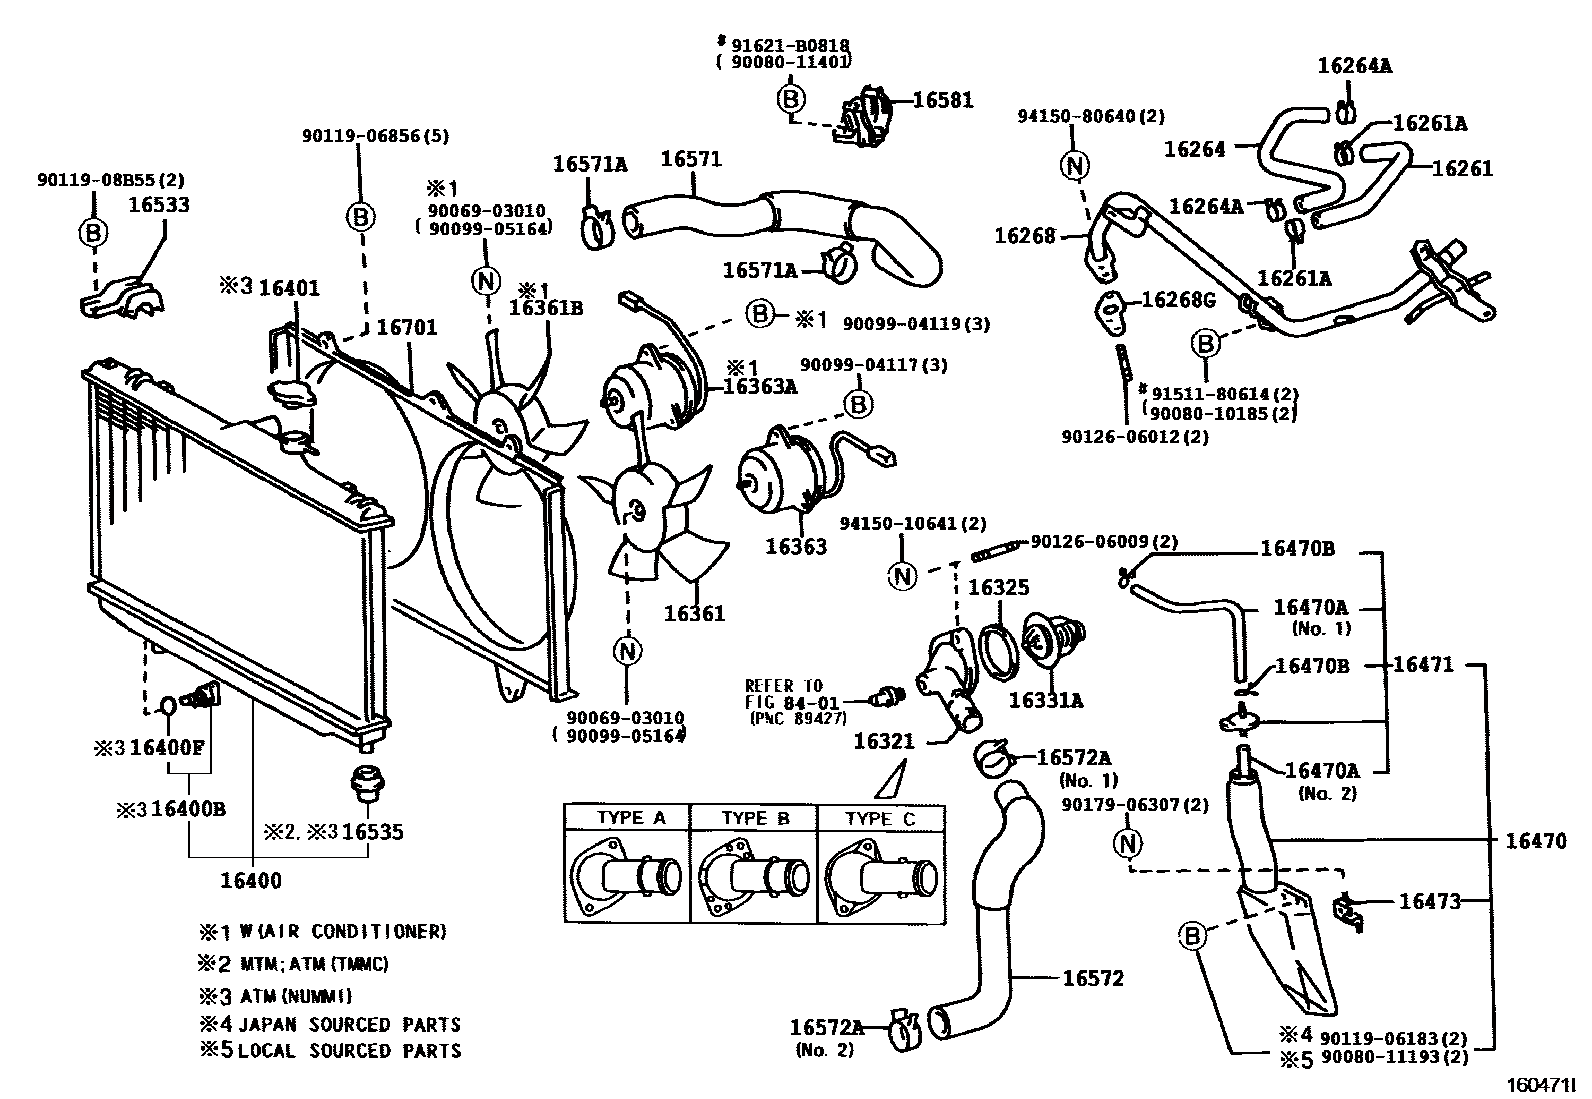 1998 Toyota Corolla Ve 1zzfe Zze110 on Volvo S80 Wiring Diagram